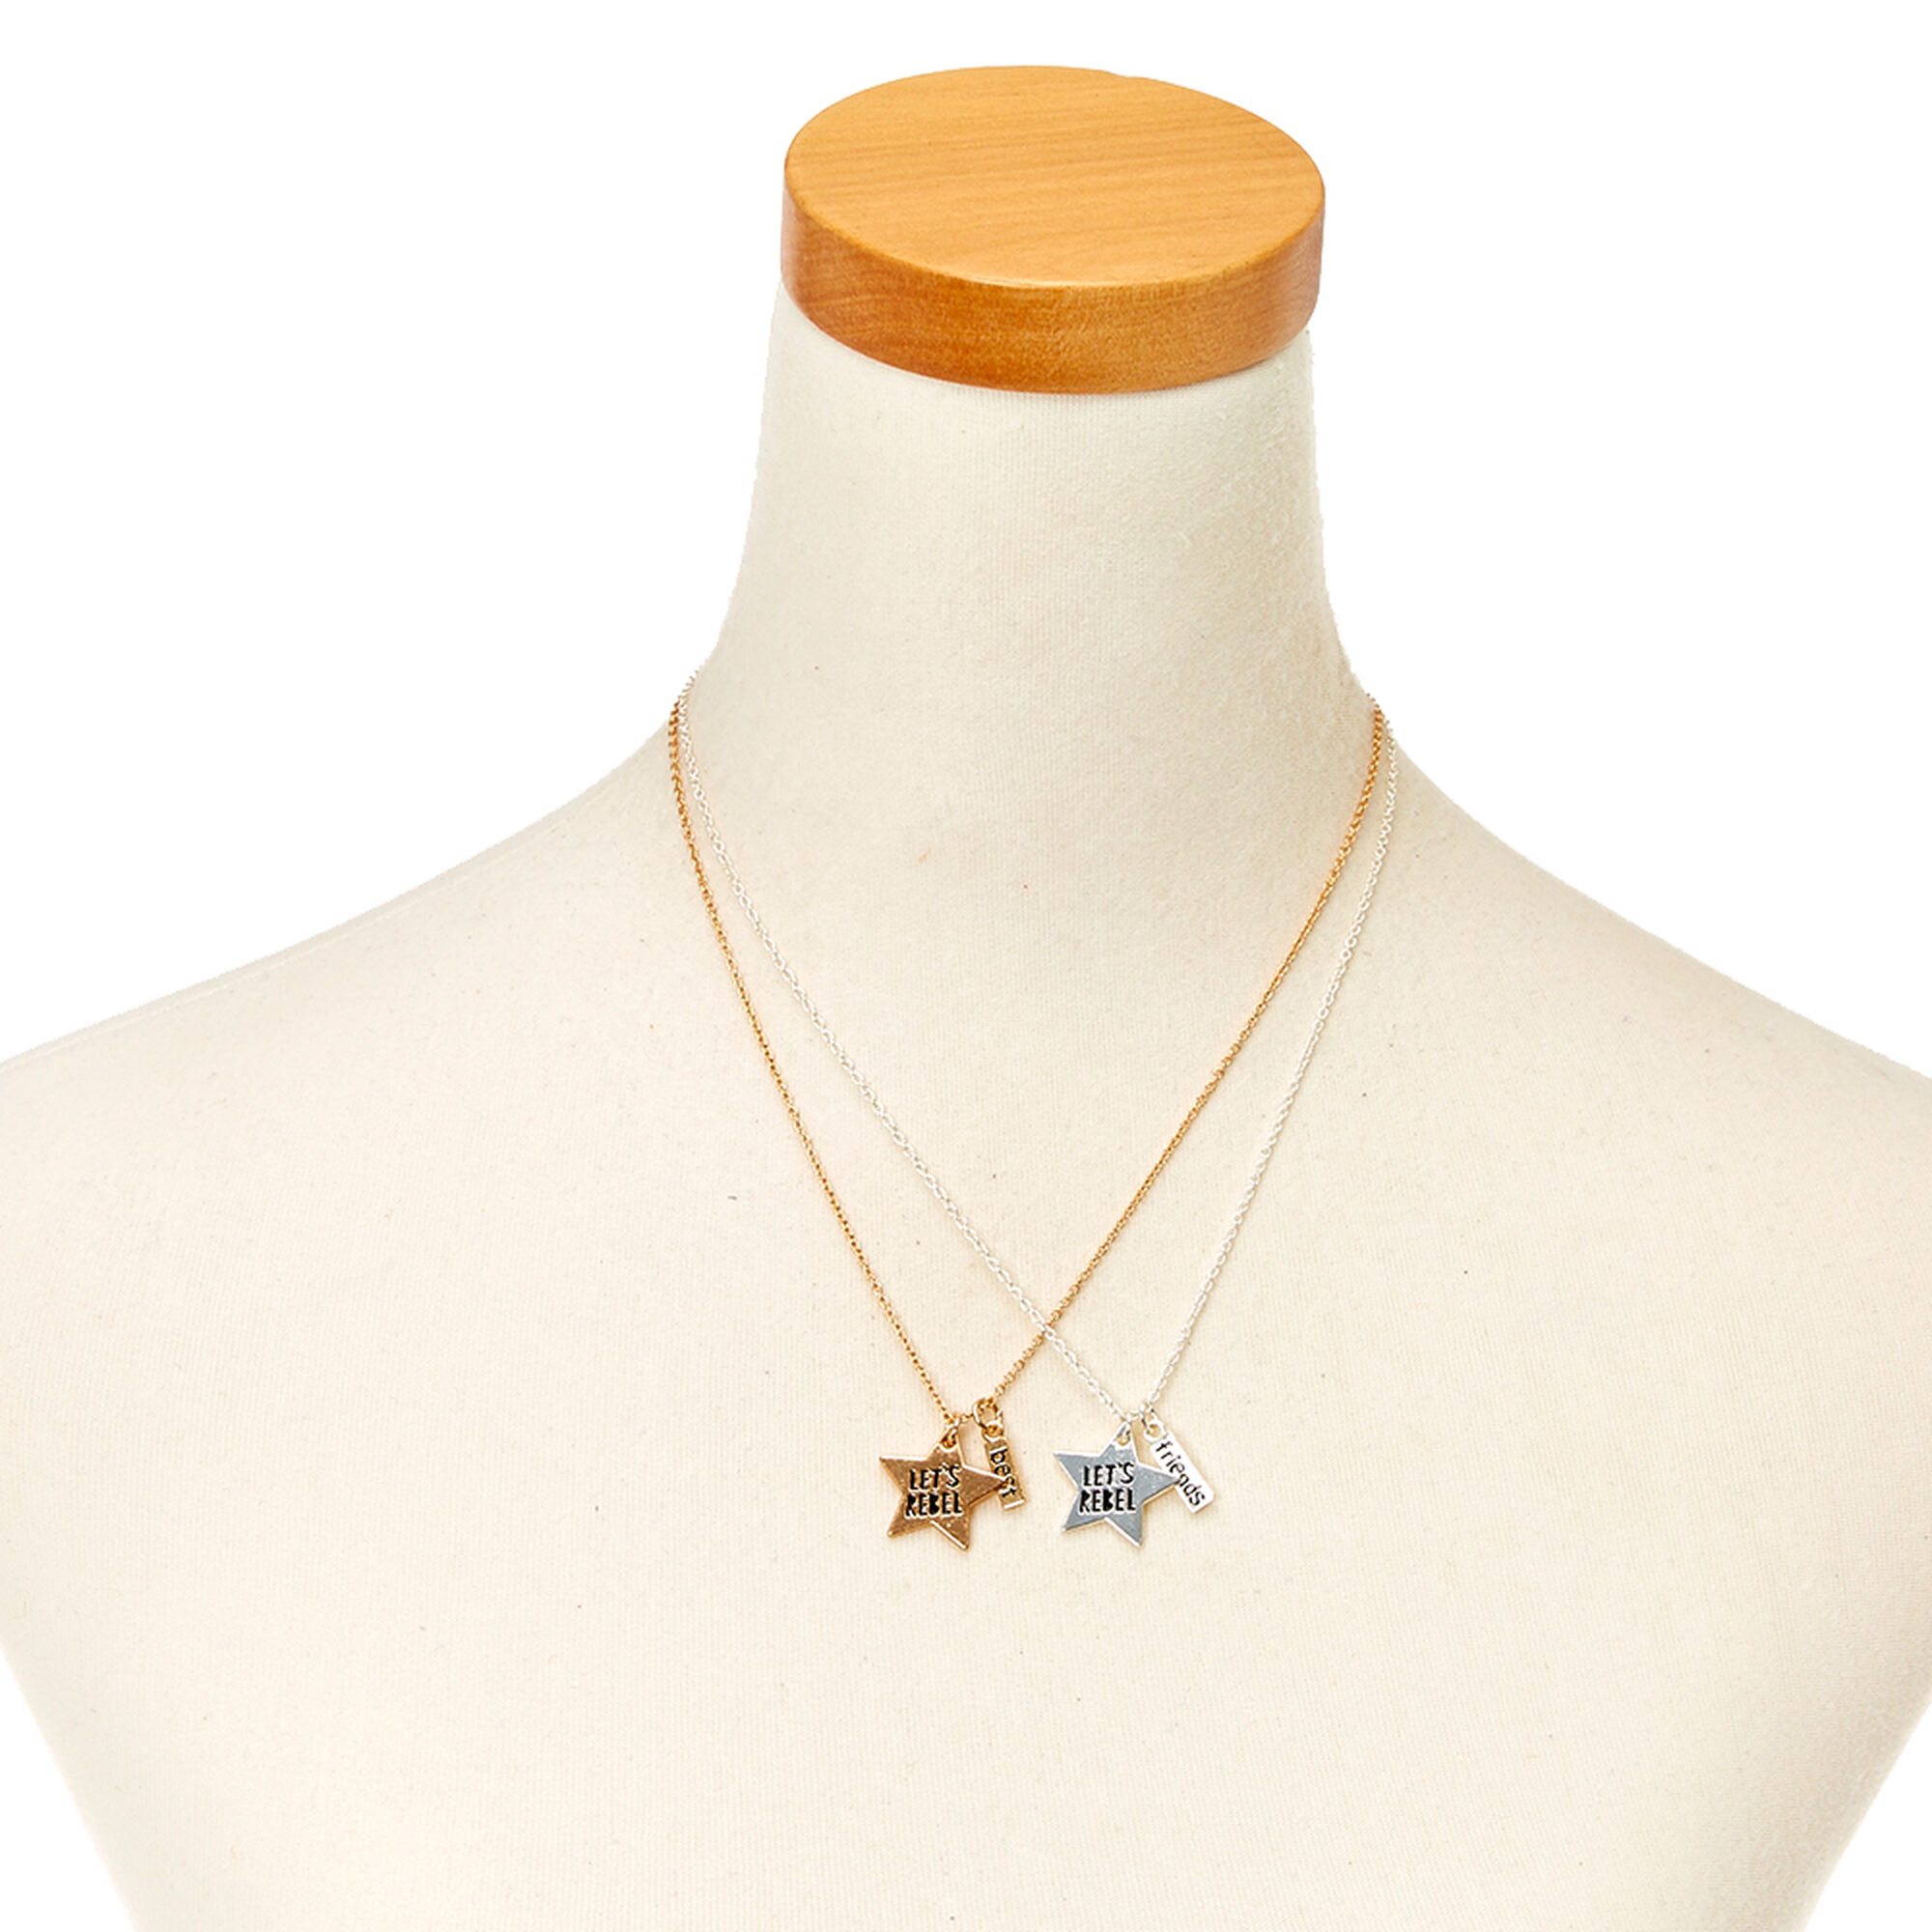 Best friends gold and silver lets rebel star pendant necklaces best friends gold and silver let39s rebel star pendant necklaces aloadofball Choice Image